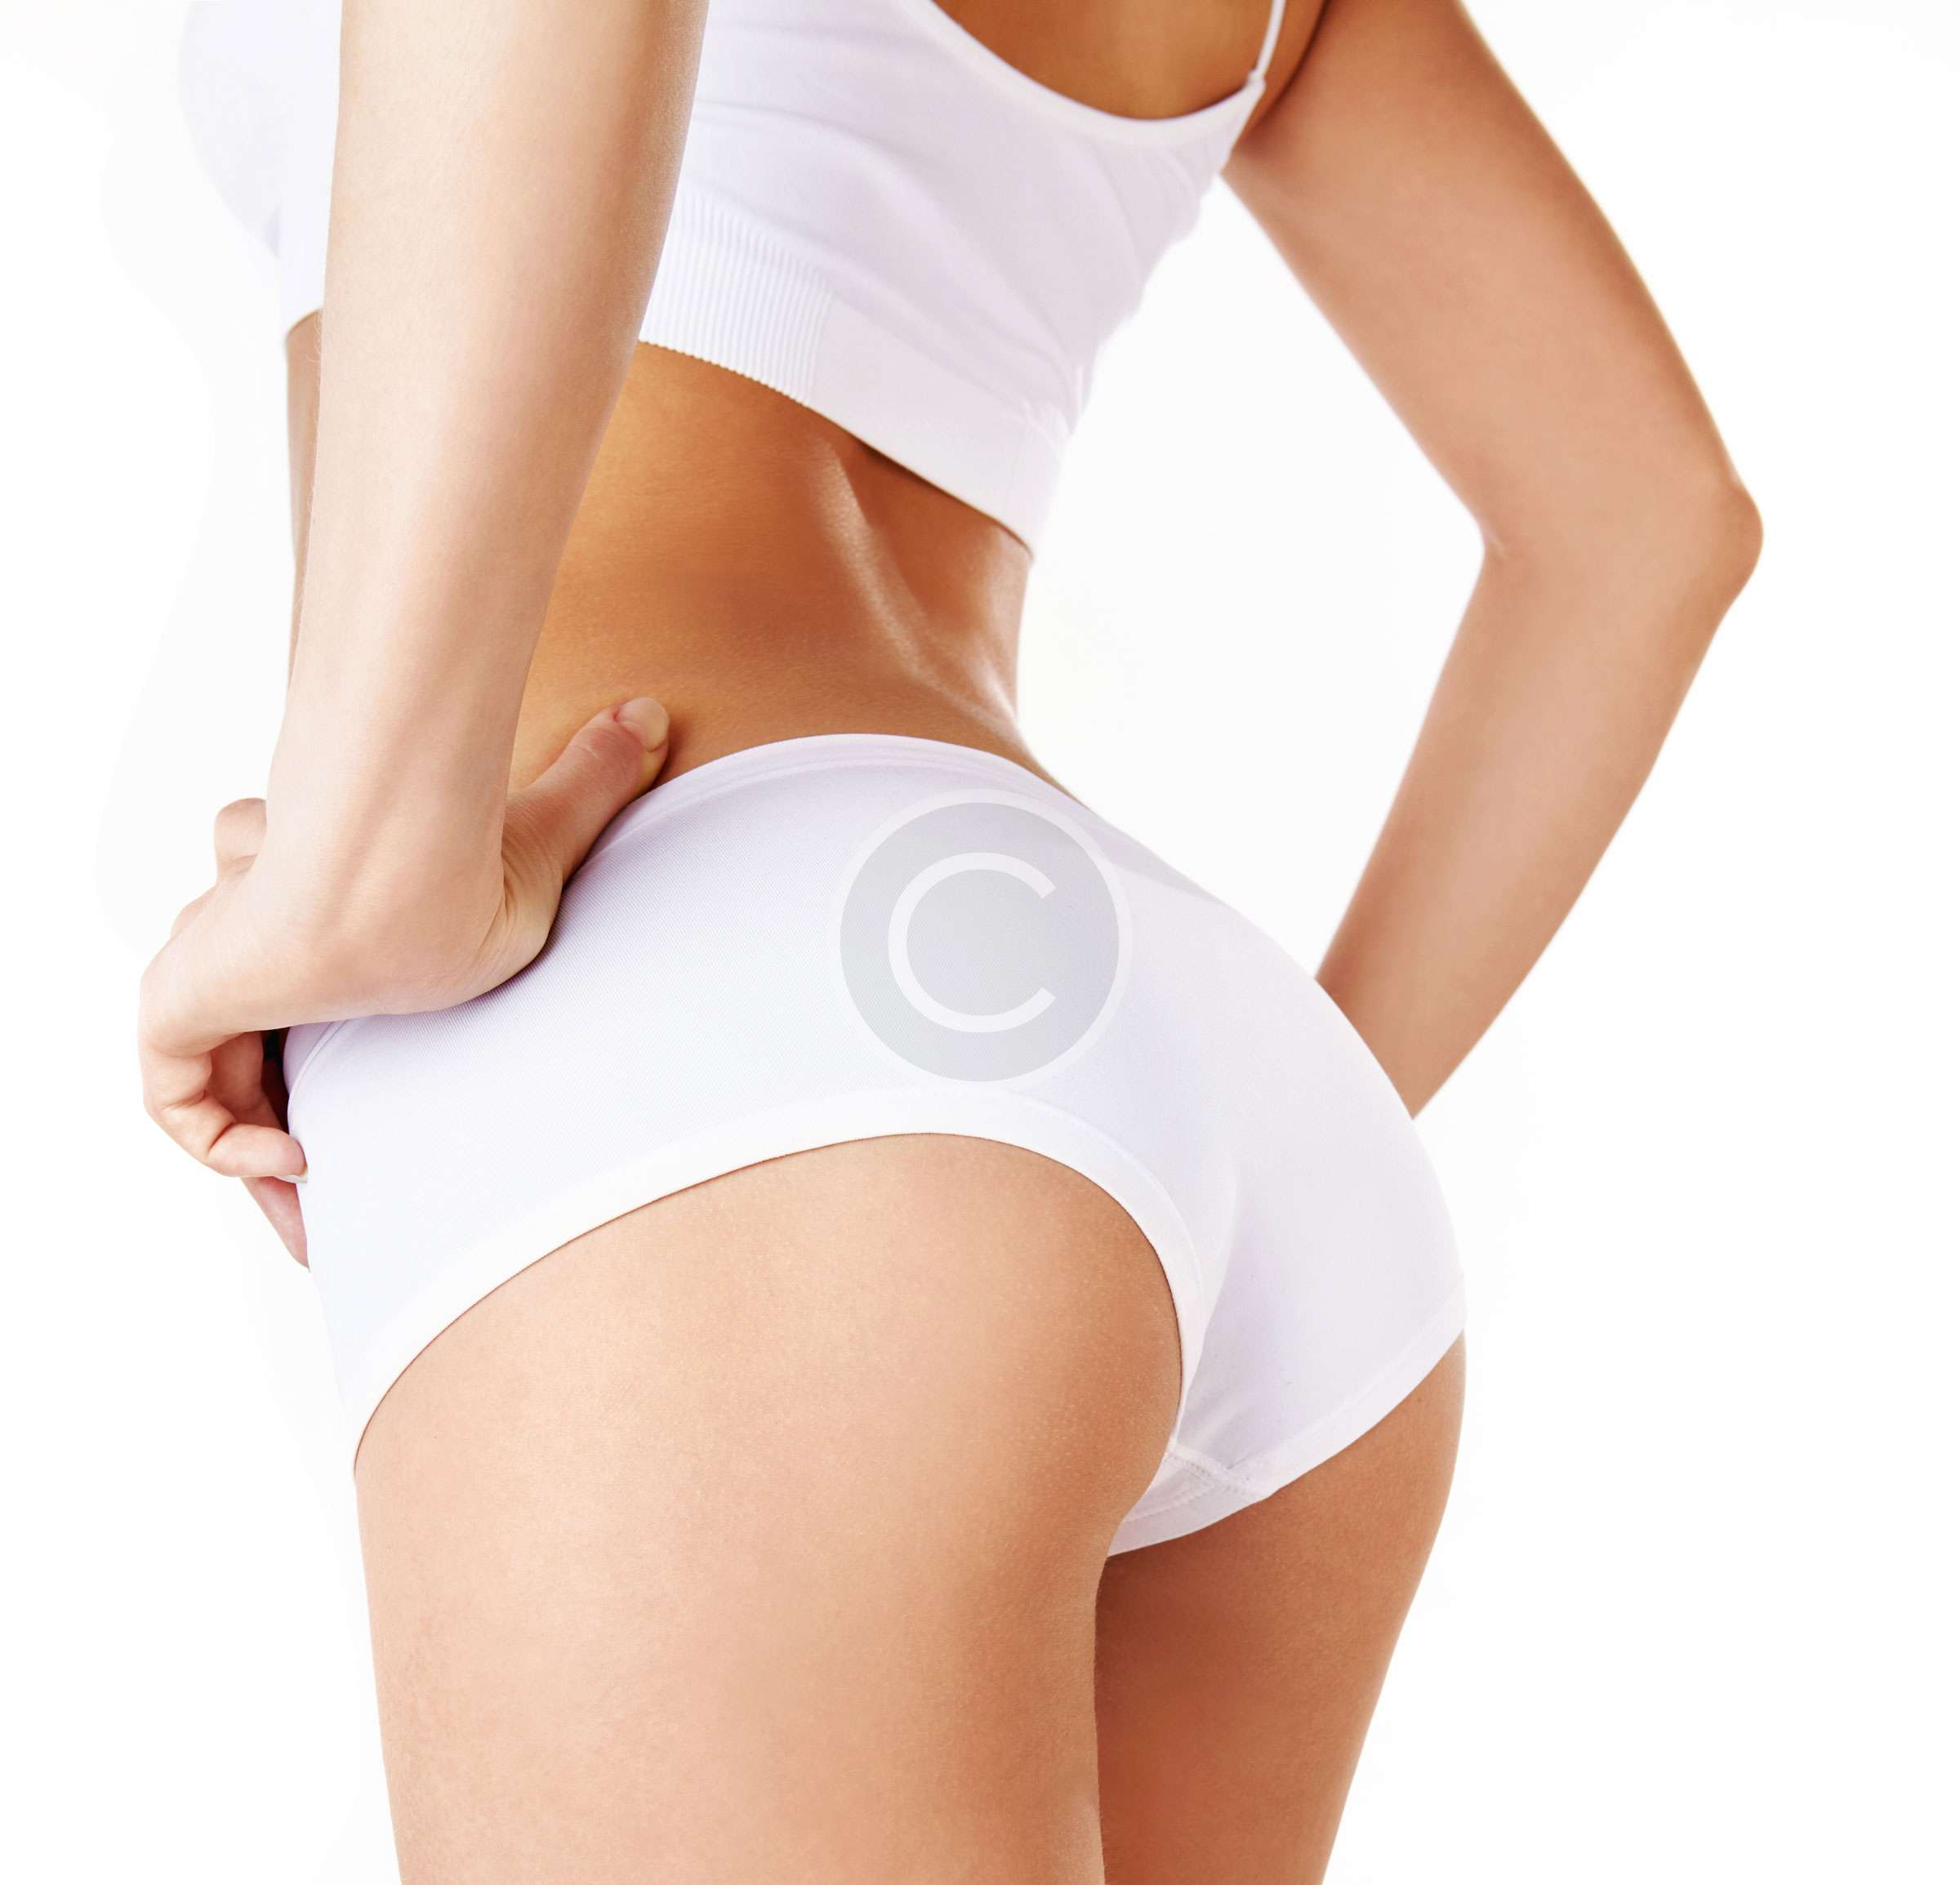 We make your body perfect for the summer season